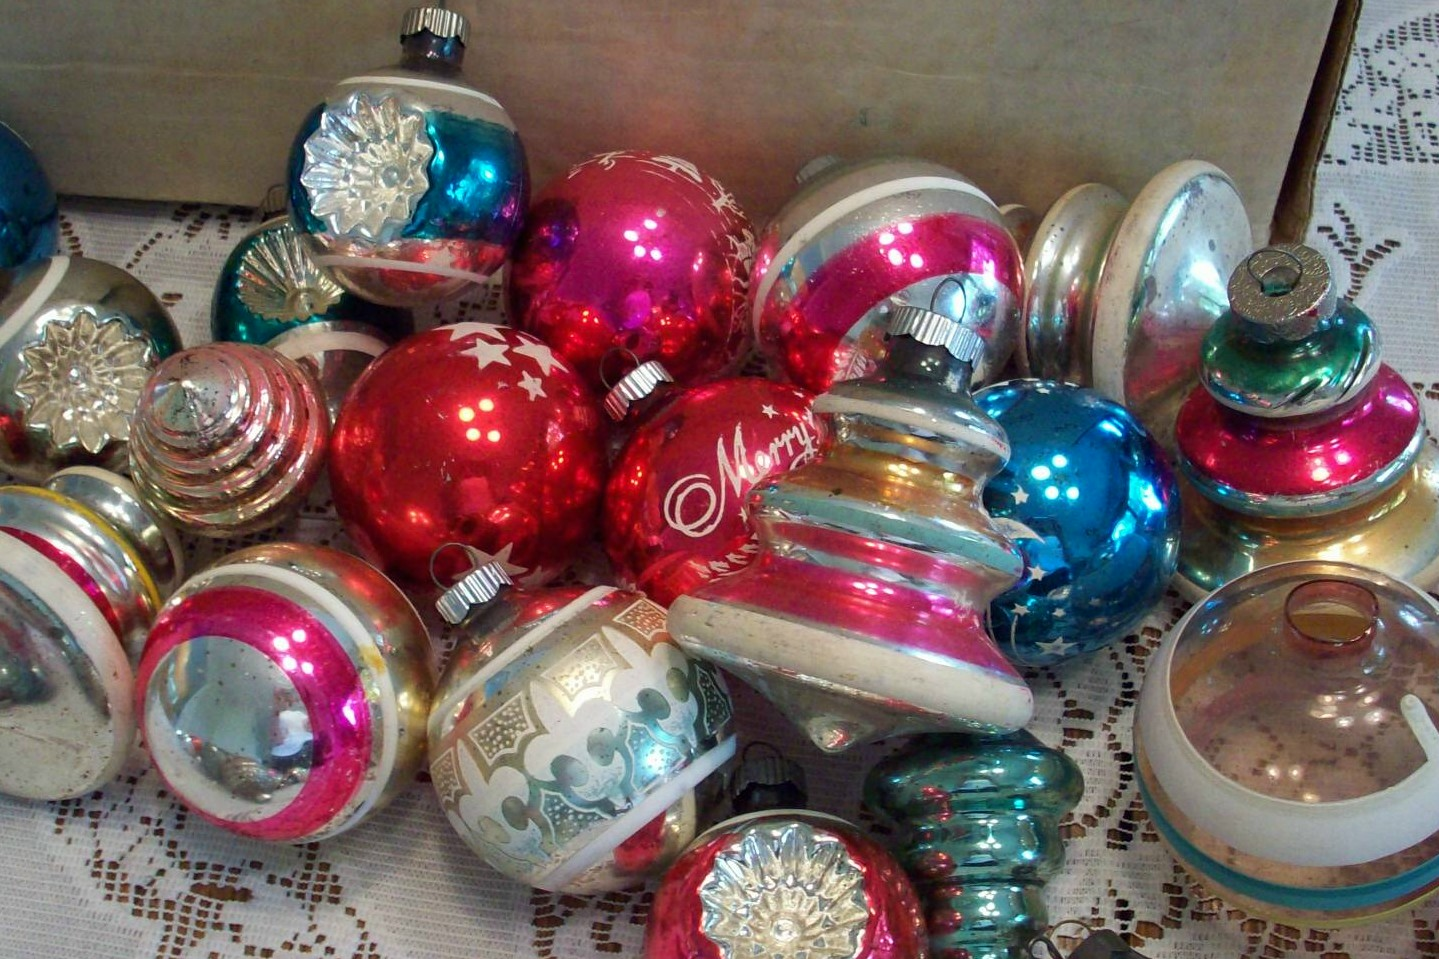 Oodles and oodles: Sorting through vintage Christmas ornaments